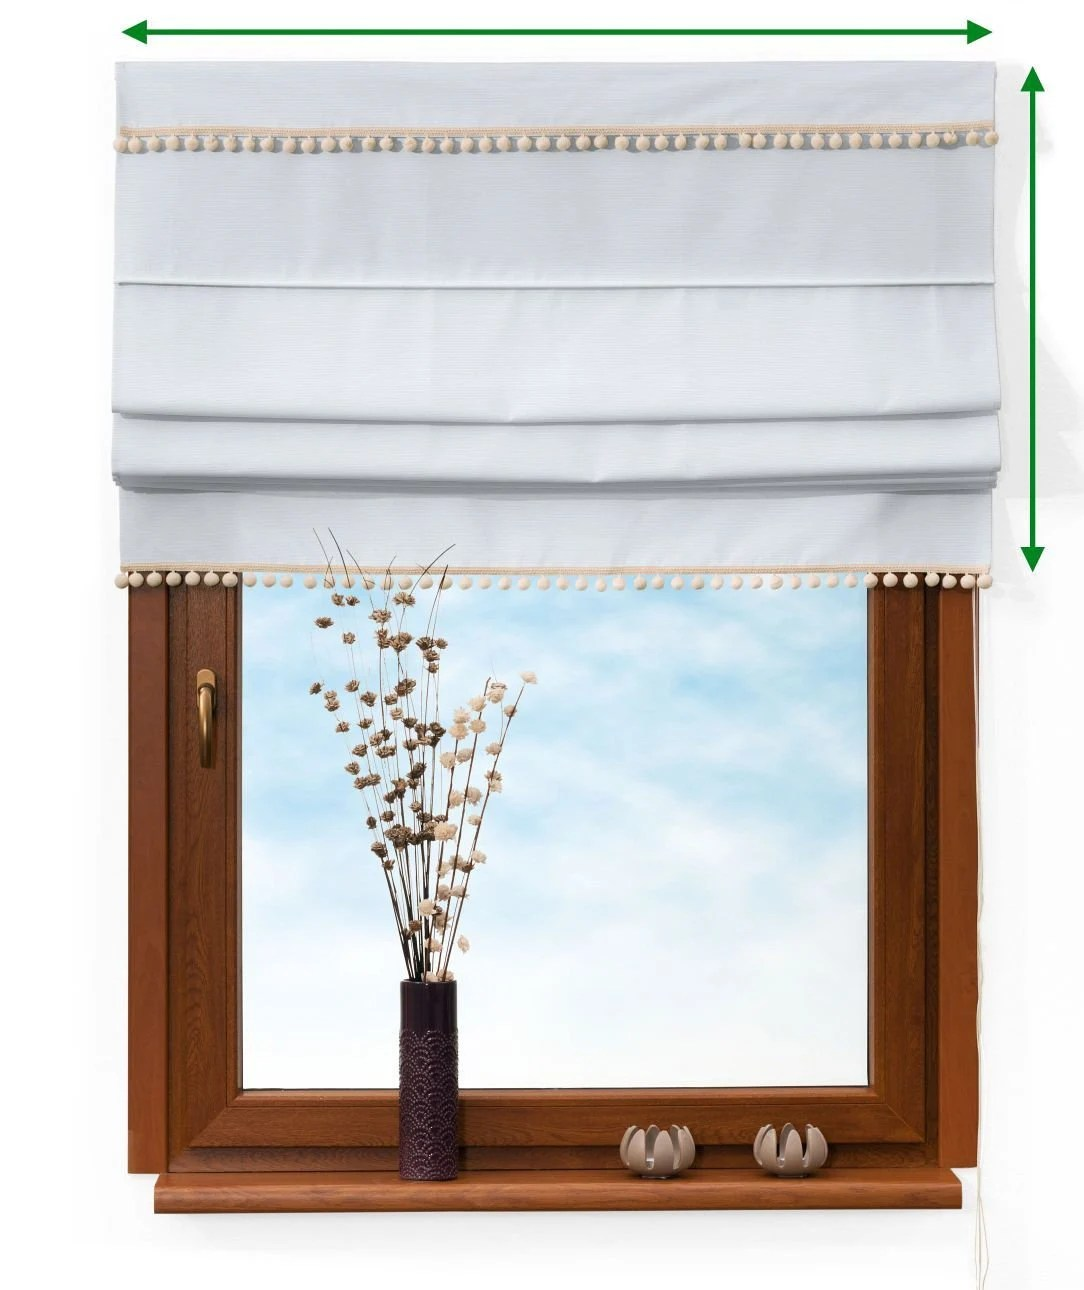 Raffrollo 150 Cm Breit Raffrollo With Bommel 100 Linen 2 Colours Custom Made Svision Protection Rollo Fabric Rollo Blinds Faltrollo Without Drilling